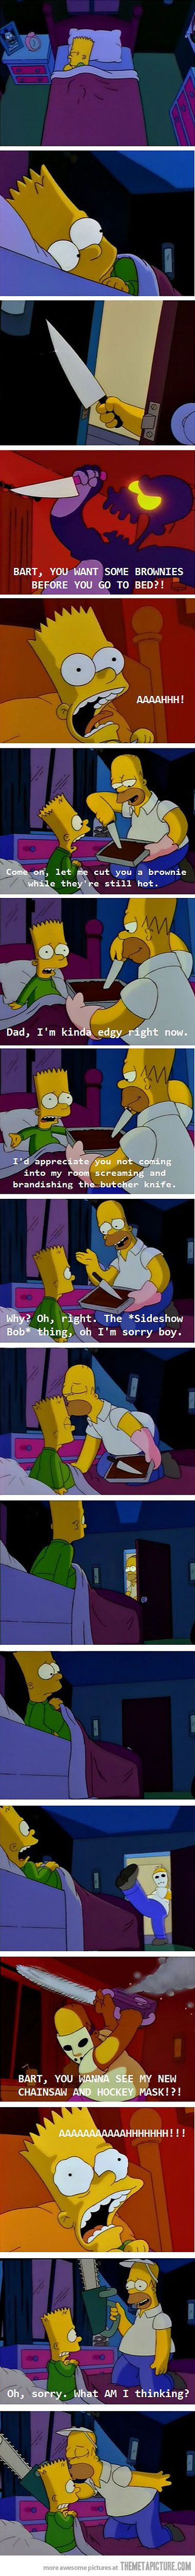 Parenting Level: Homer Simpson - The Meta Picture